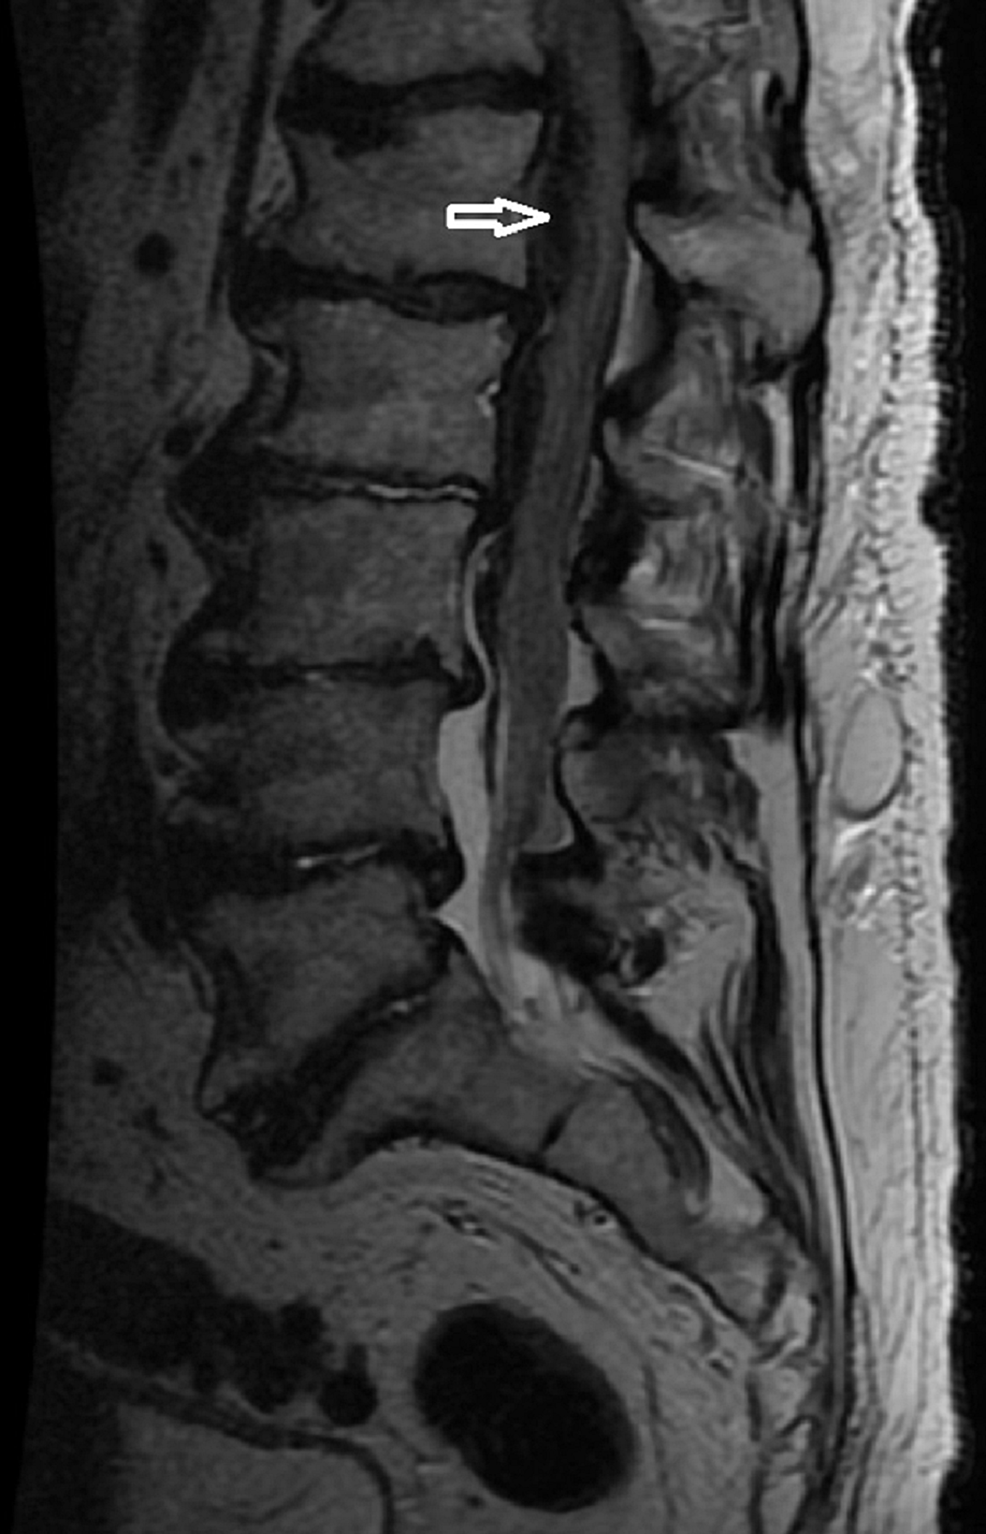 MRI-Lumbar-Spine-T2-Weighted